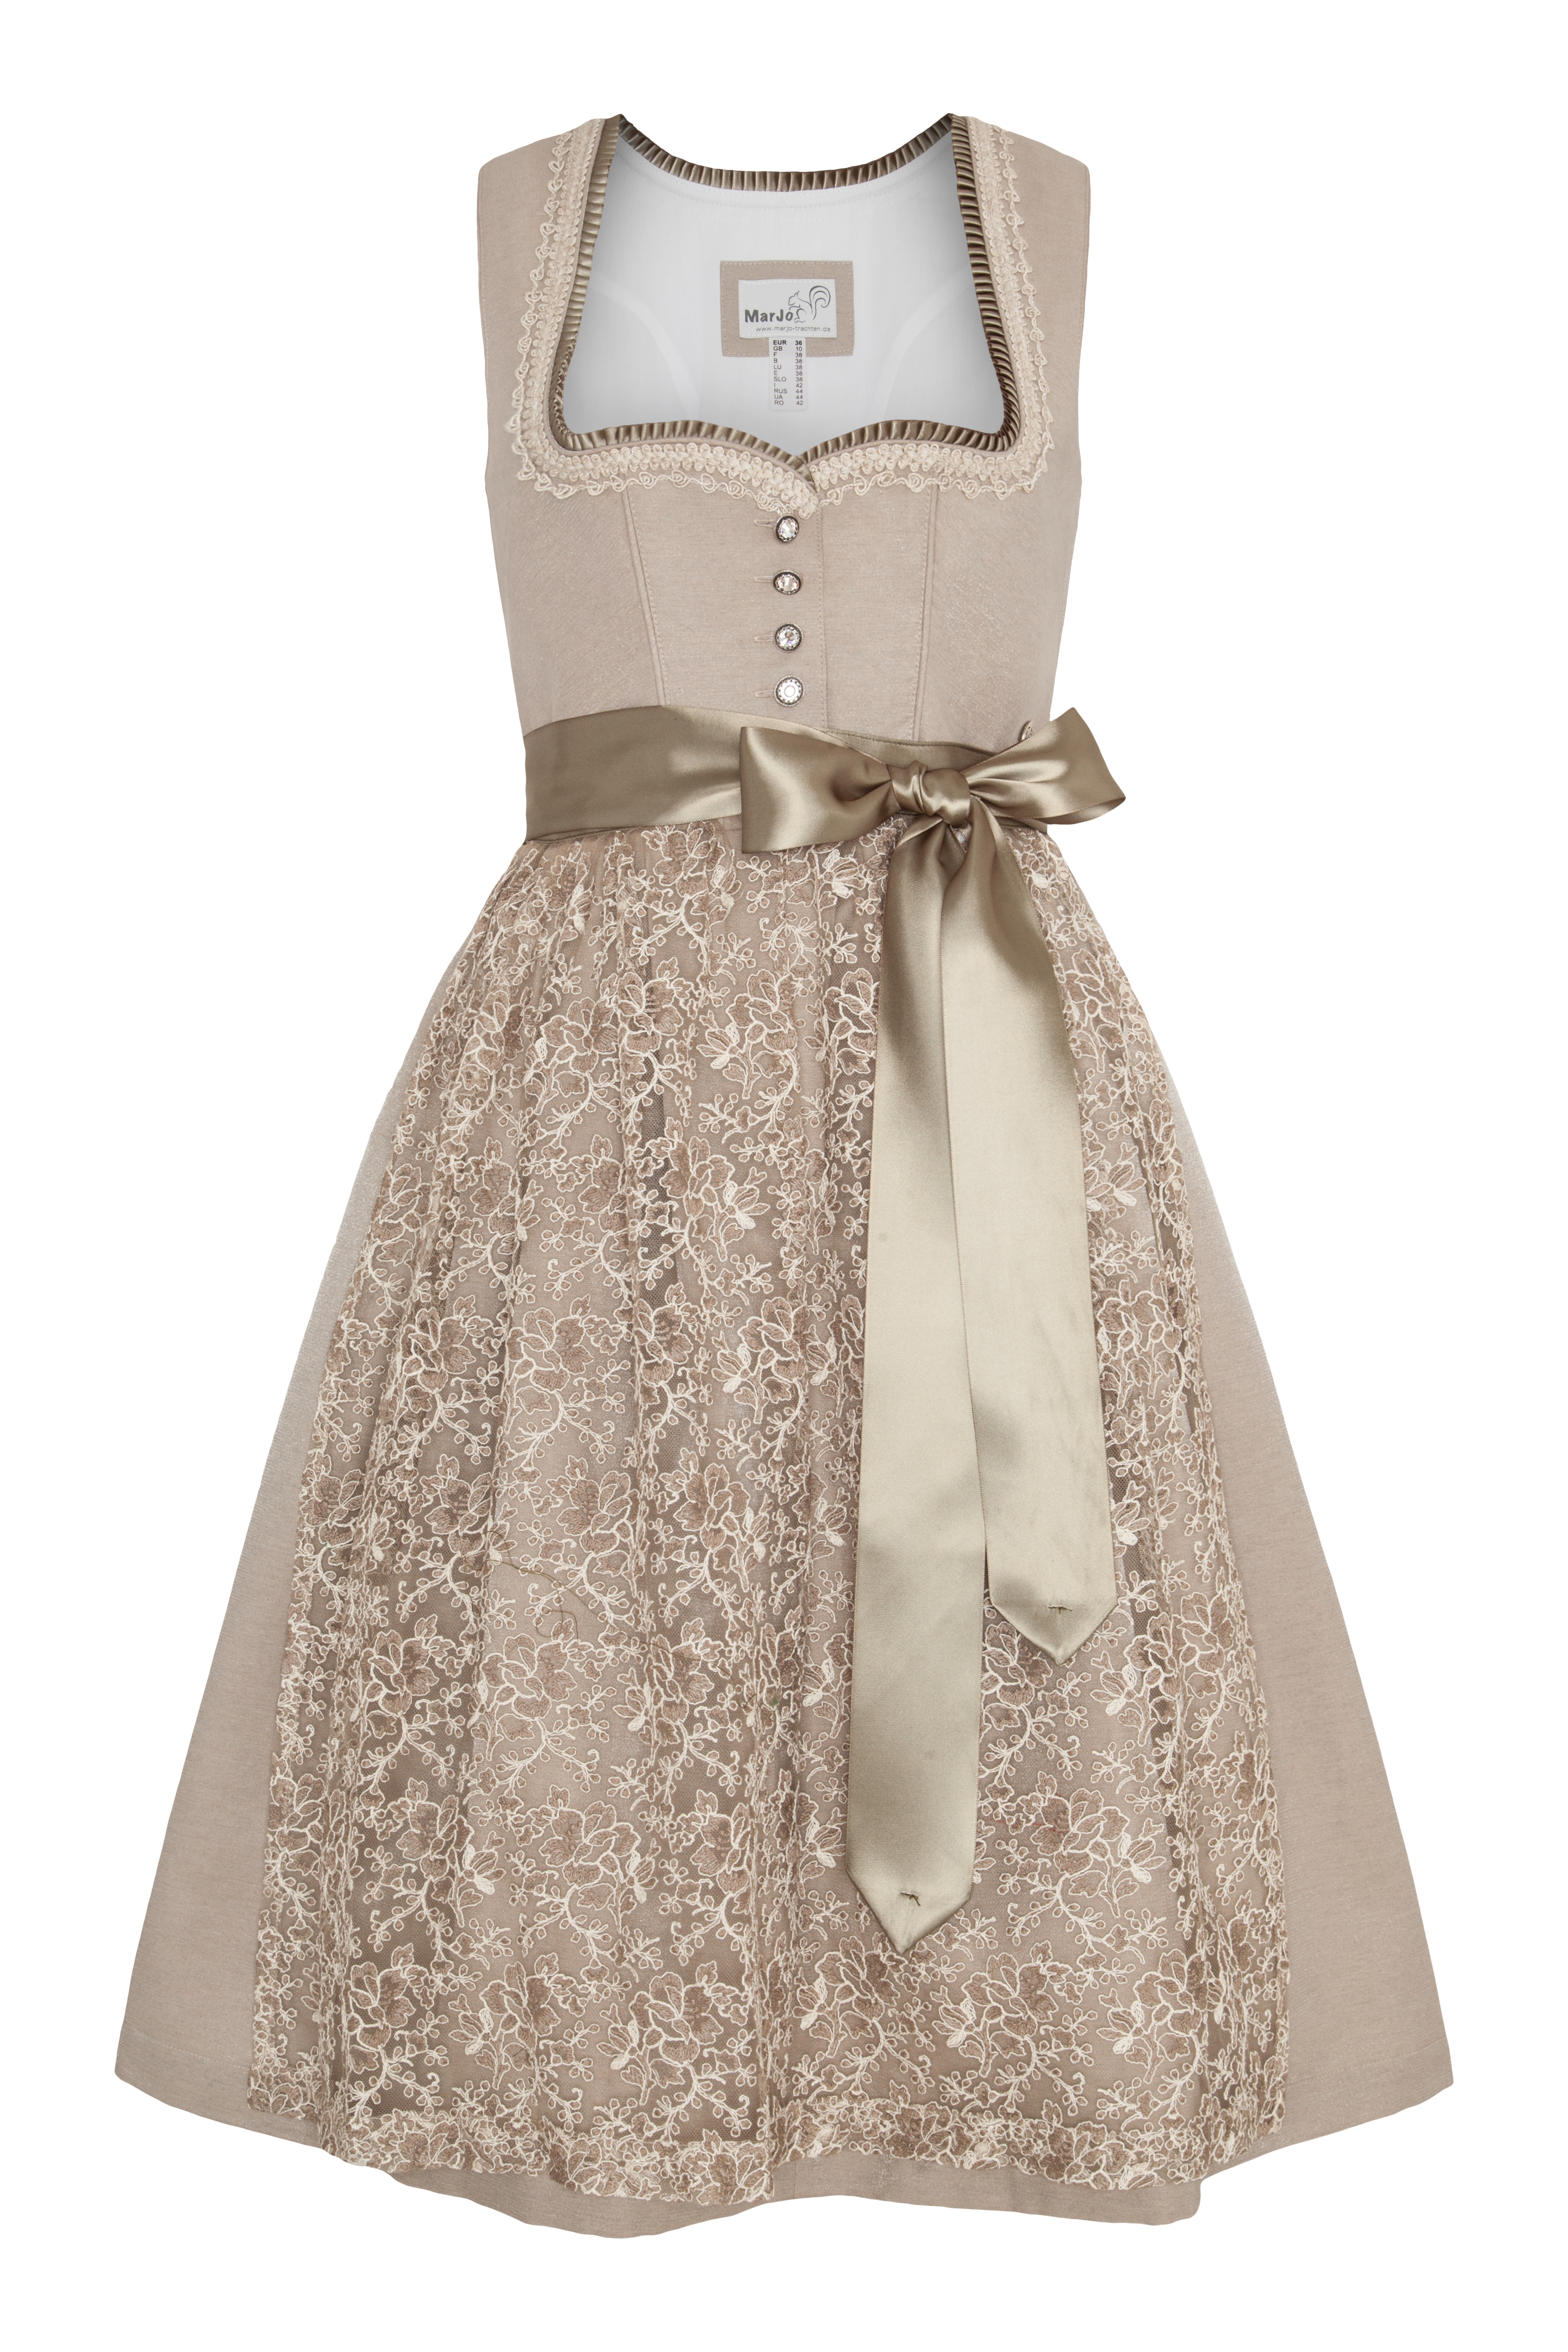 9e792d440ae996 Festliche Dirndl I Online bei Ludwig & Therese